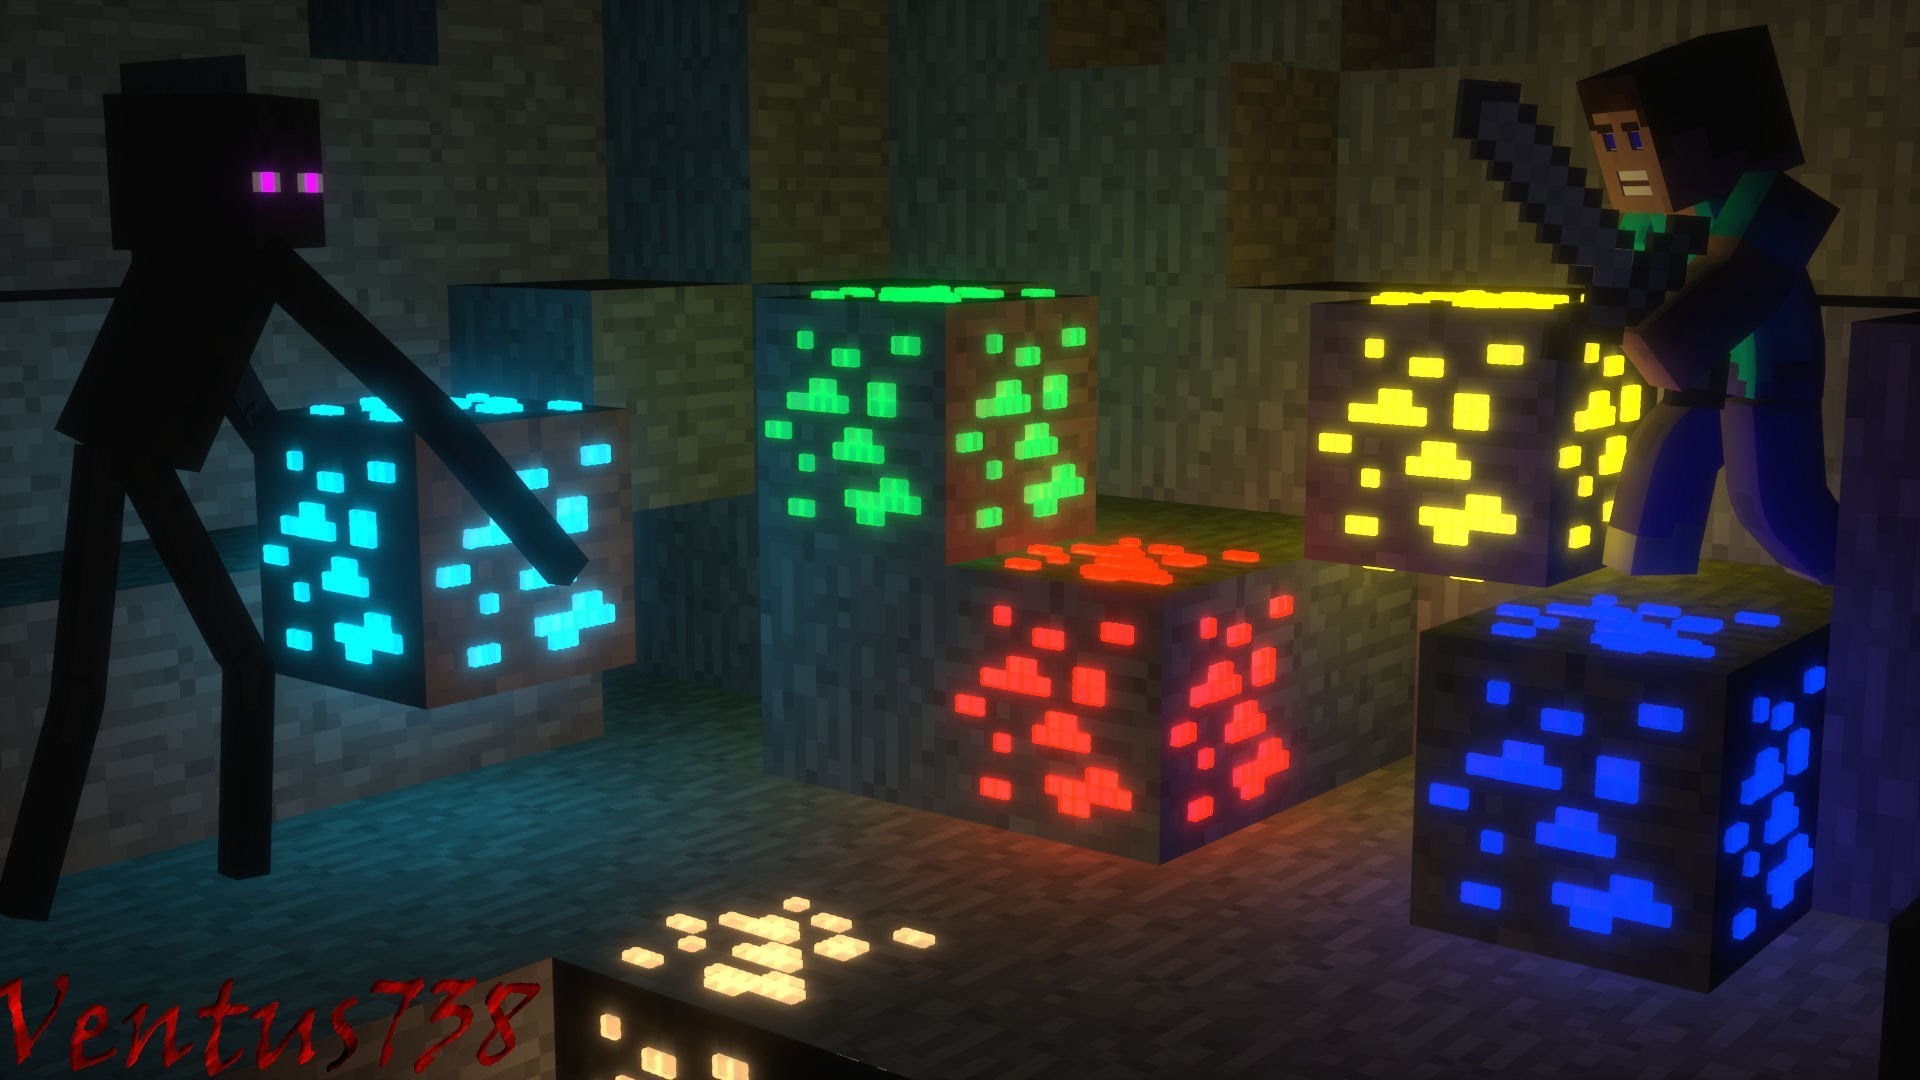 Displaying 14 Images For Minecraft Animation Wallpaper 1920x1080